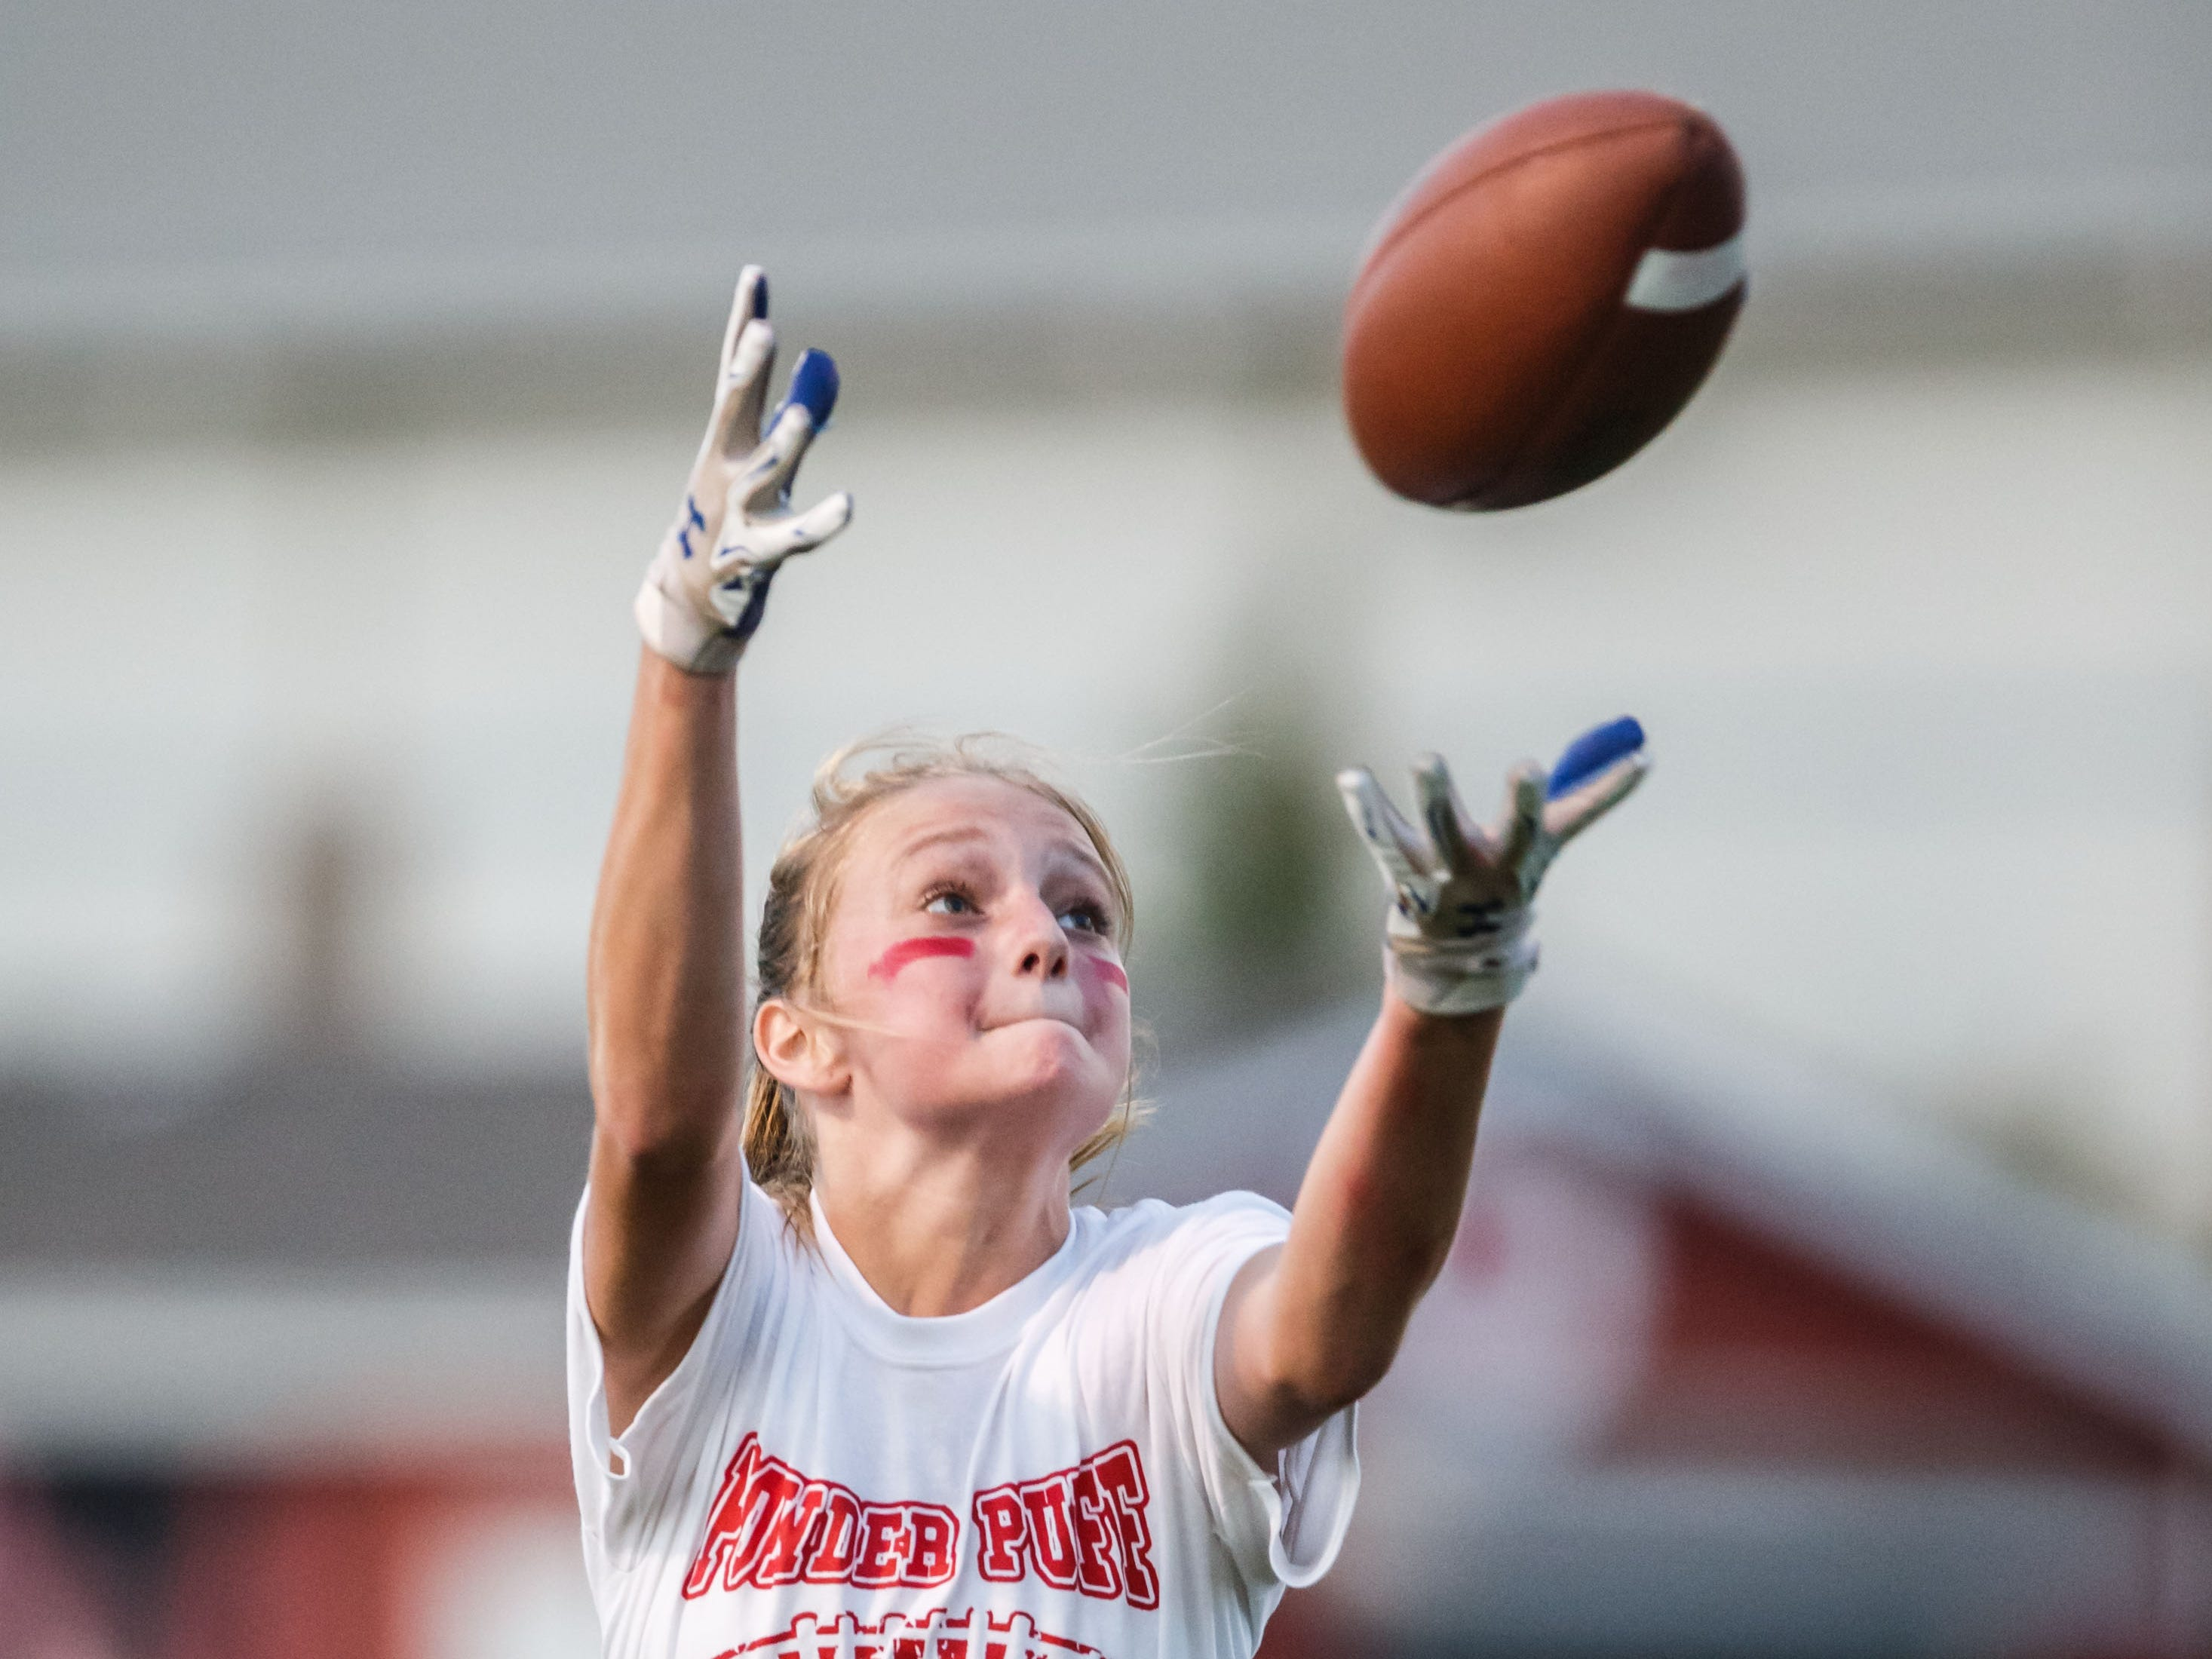 Hamilton freshman Isabelle Langkamp reaches for a pass during the freshman vs. seniors powder puff football game on Wednesday, Oct. 3, 2018. The game was part of the school's homecoming week celebrations.